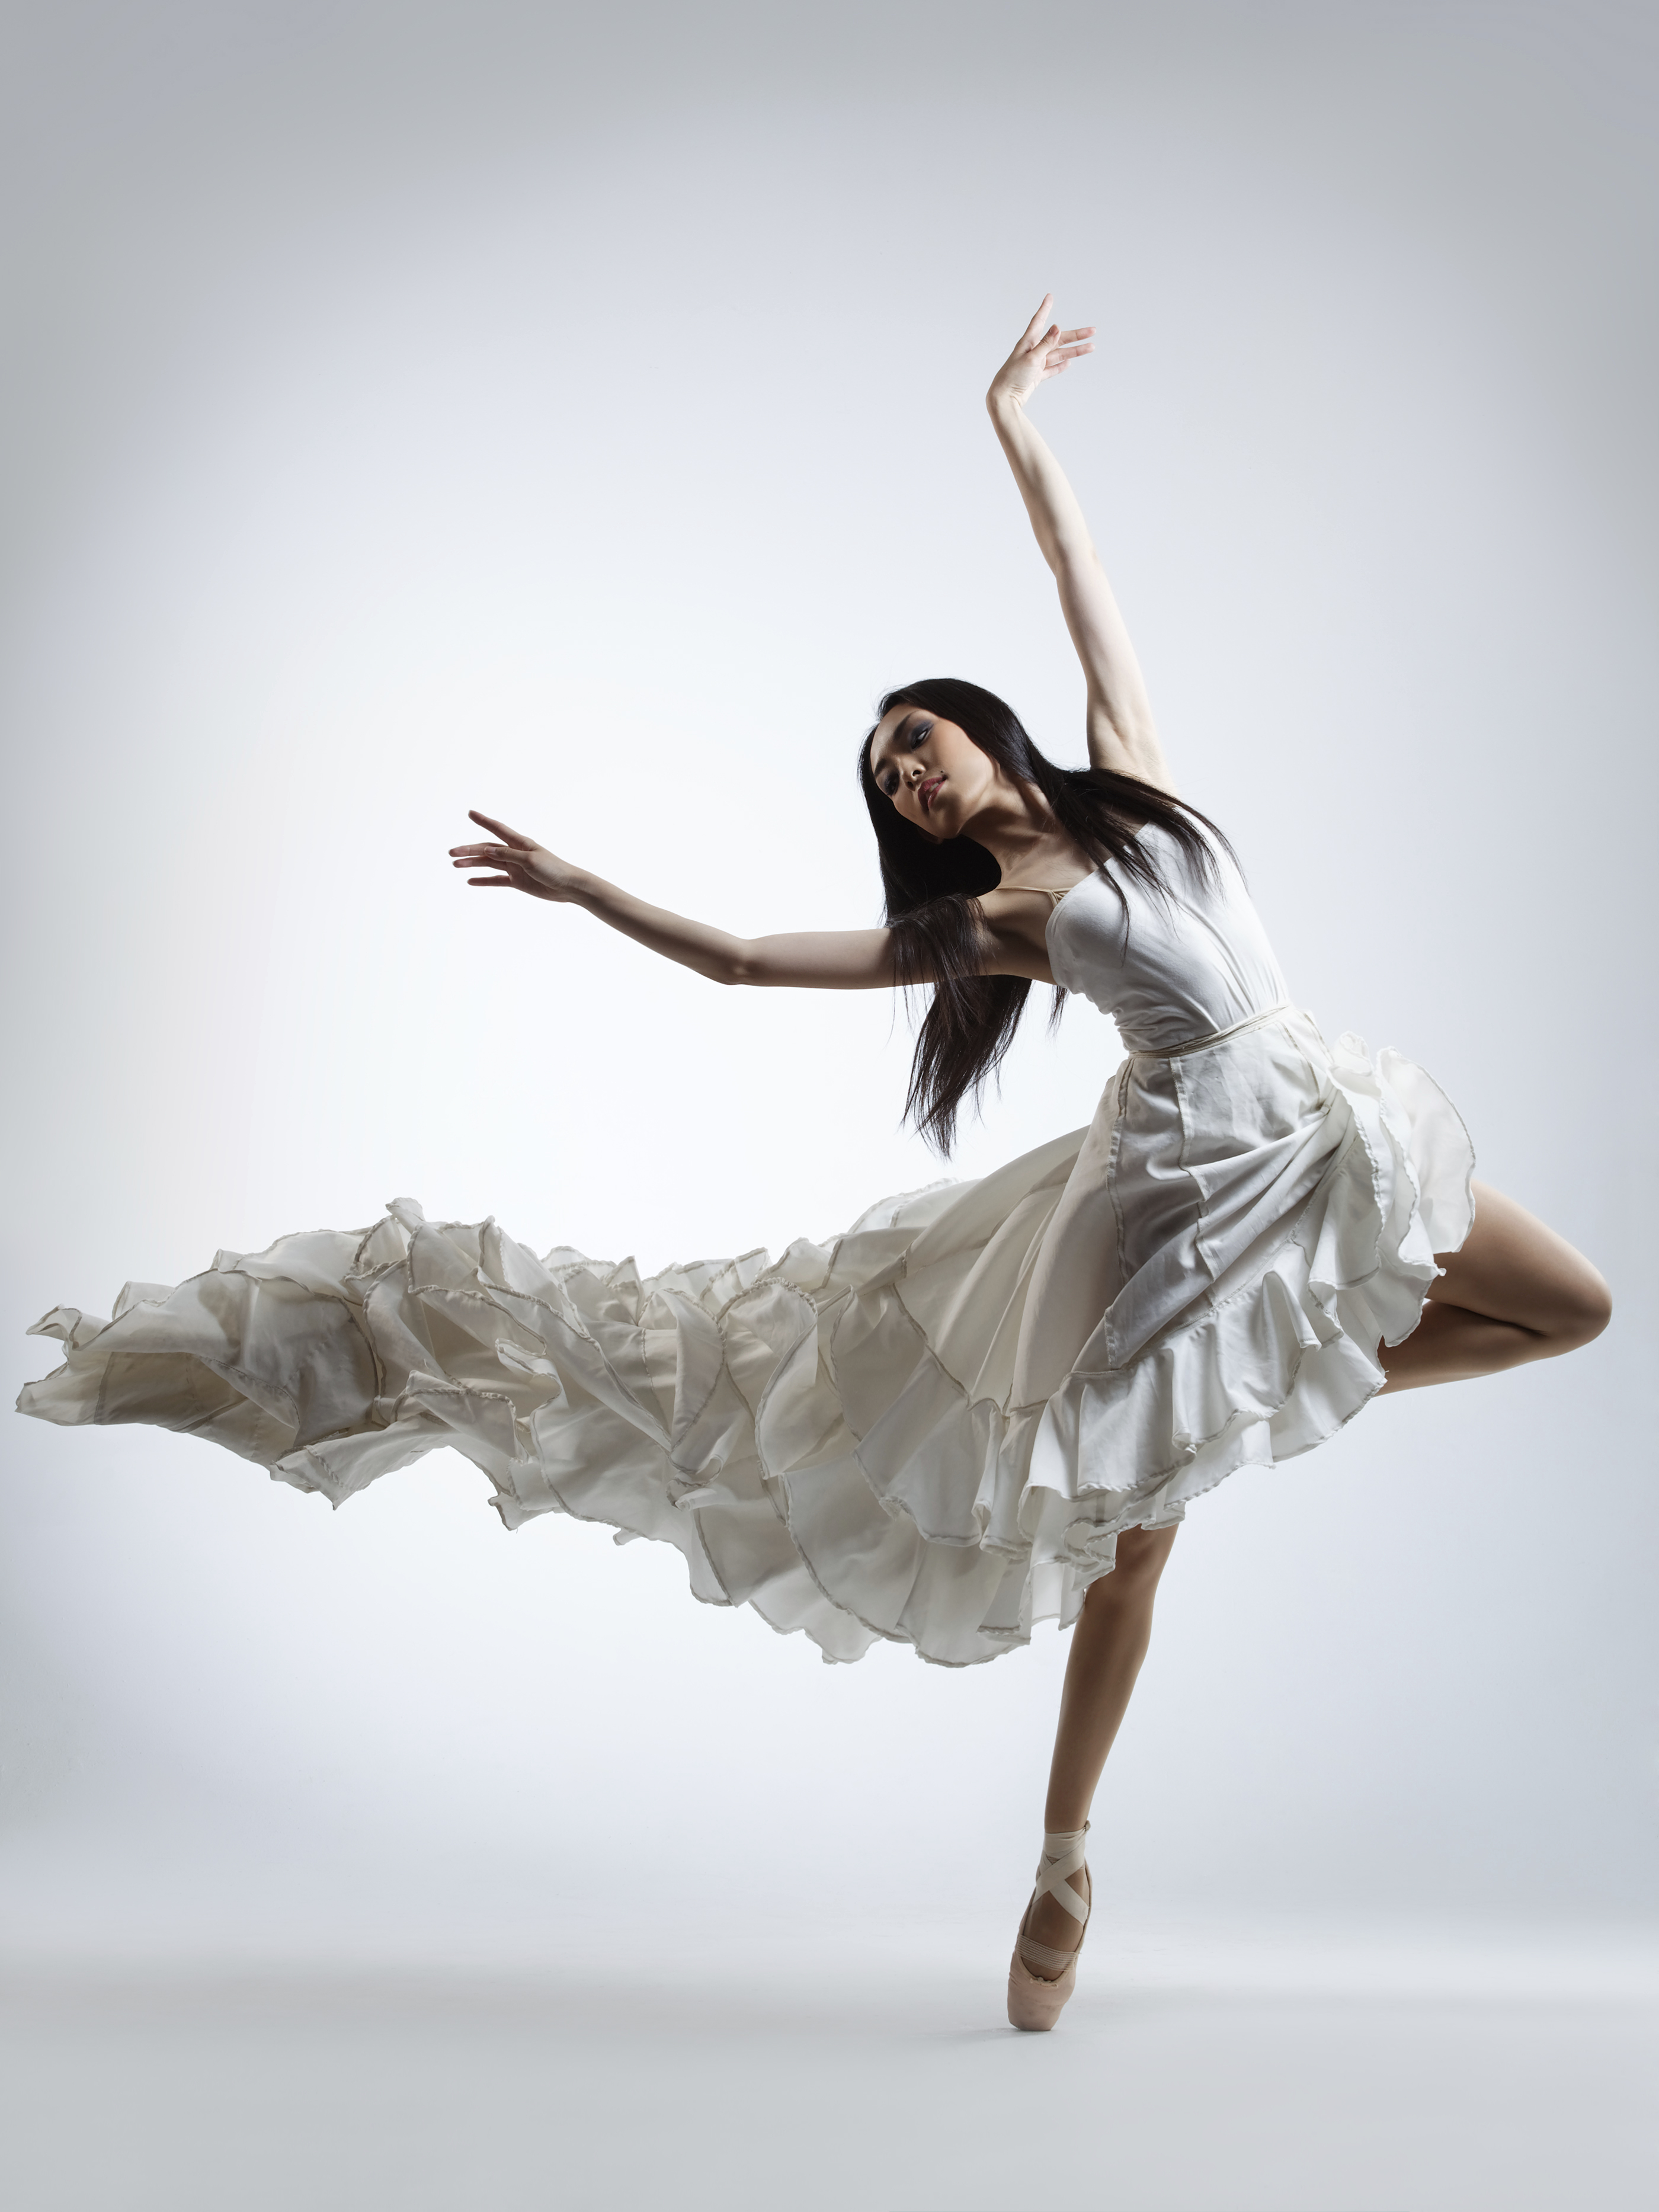 Dancer picture pics 44